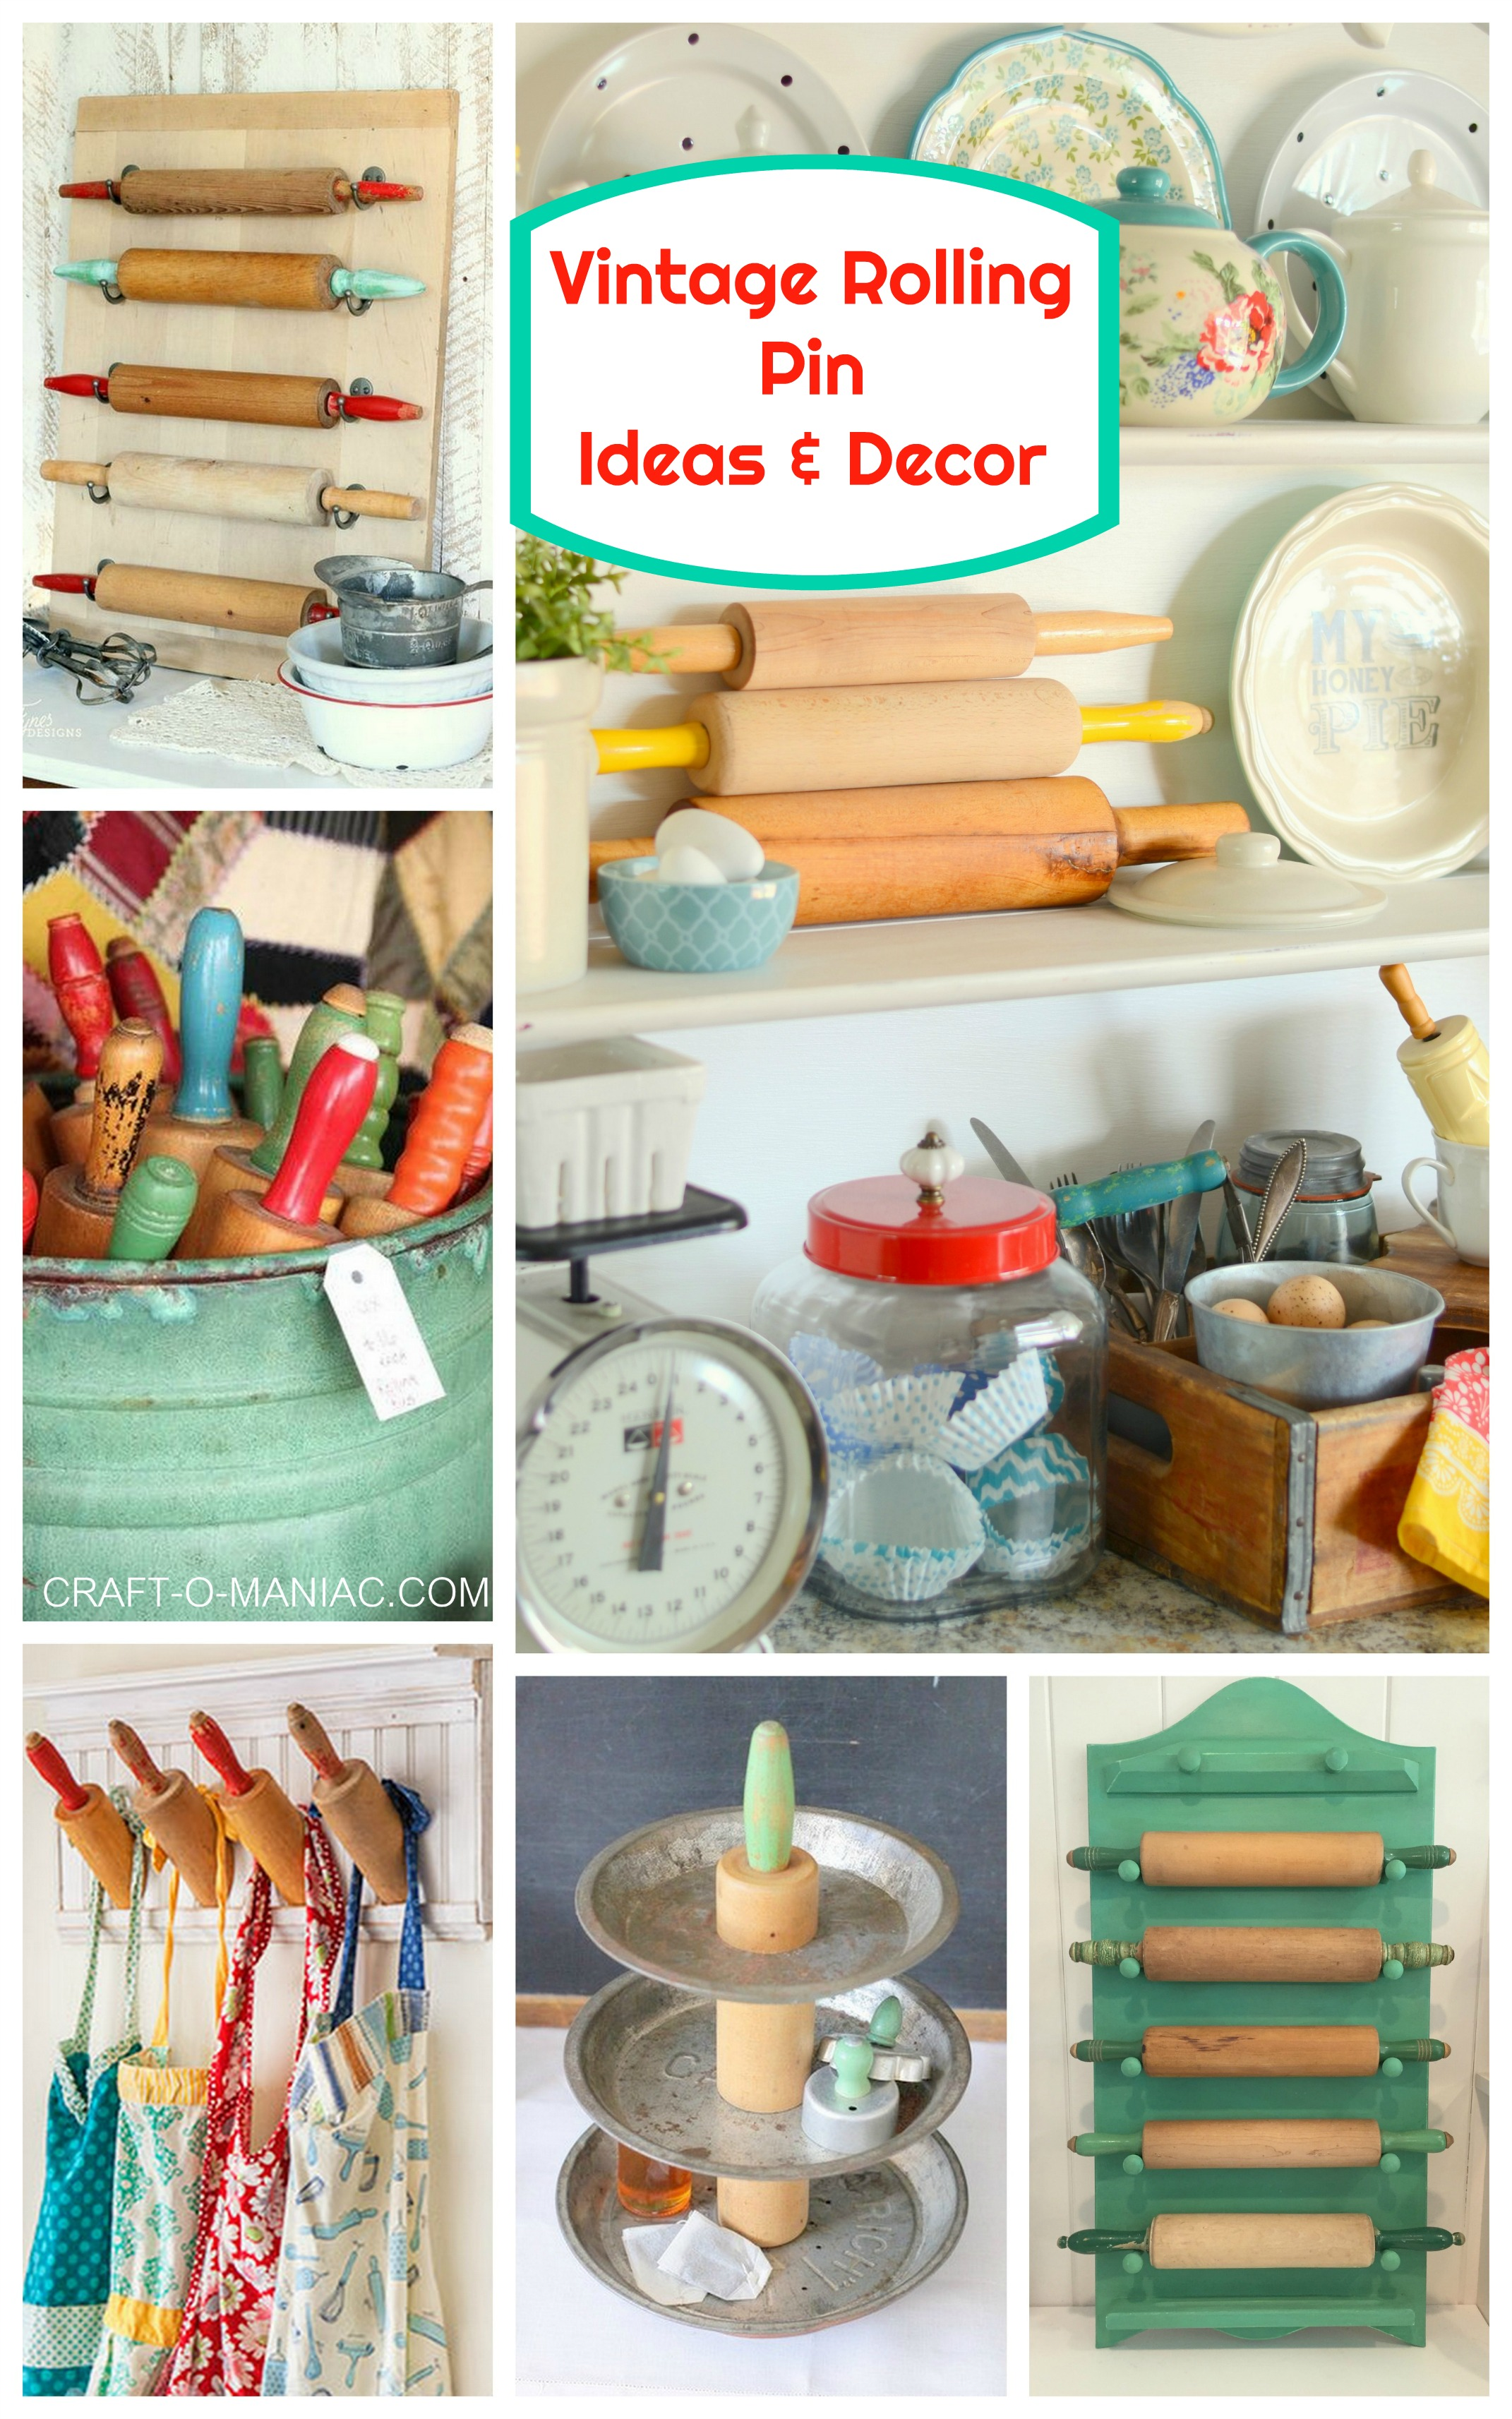 Vintage Rolling Pin Ideas And Decor Craft O Maniac